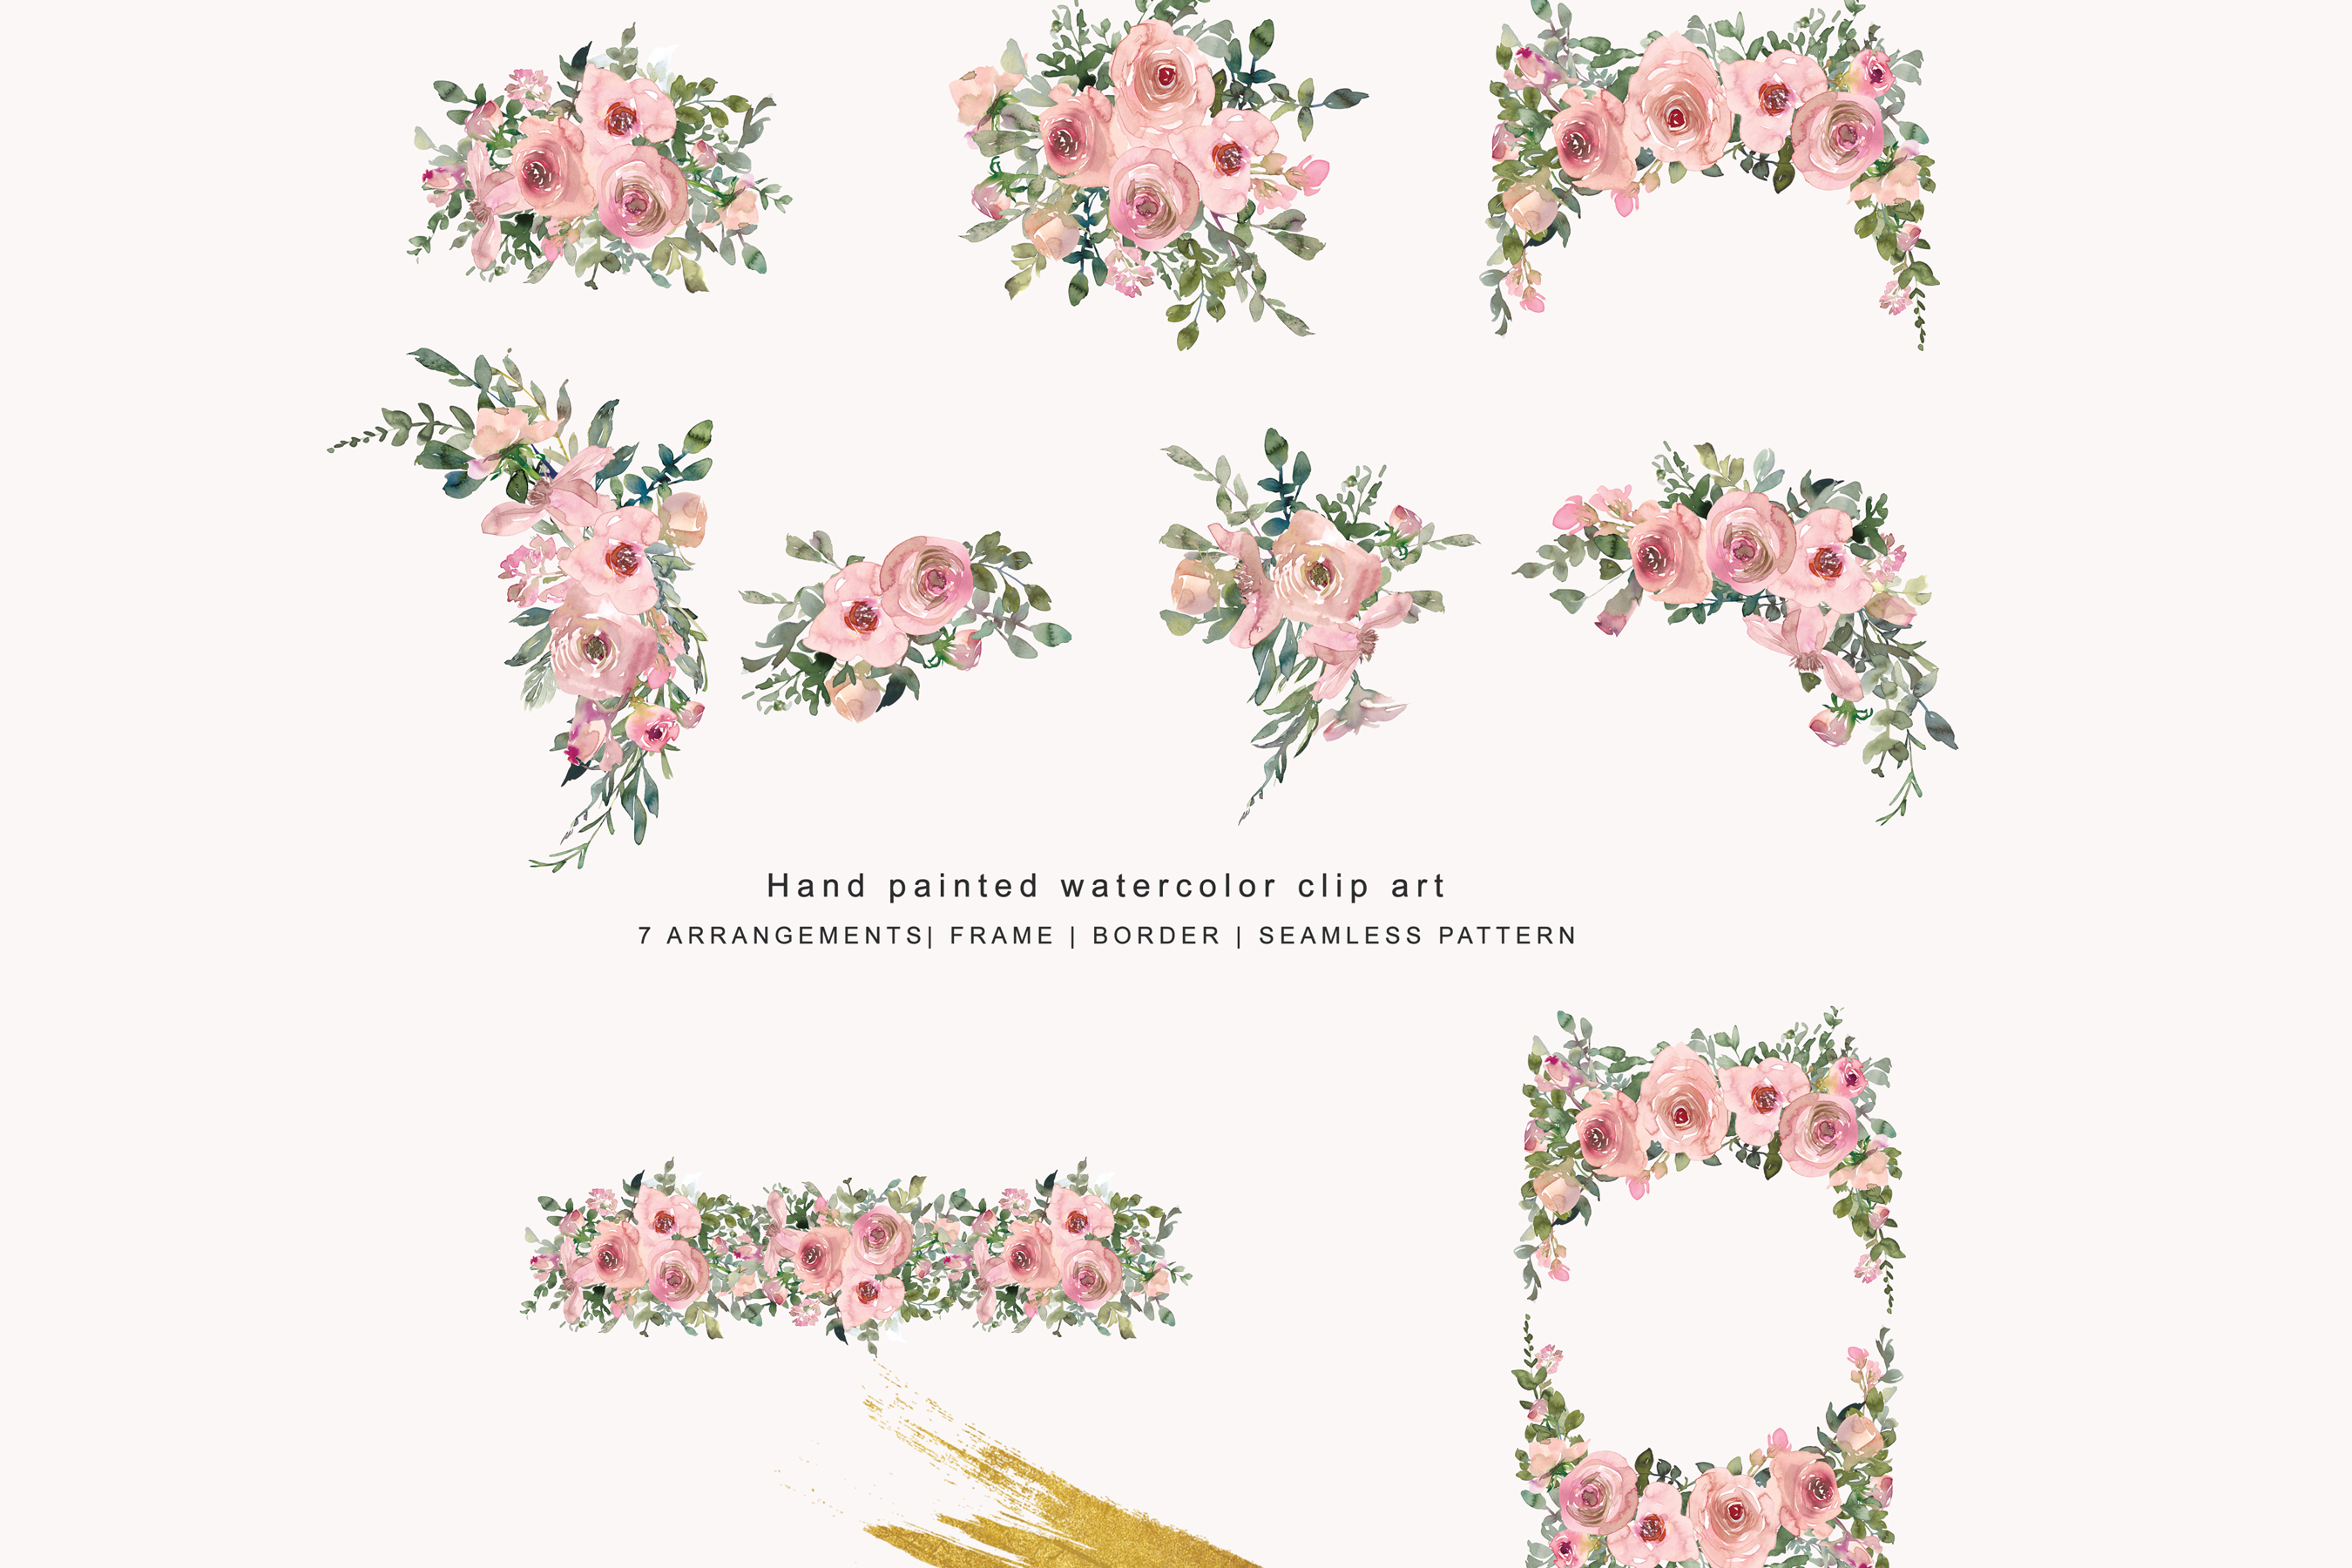 Pink blush clipart image library Watercolor Pink Blush Floral Clipart - Arrangements image library